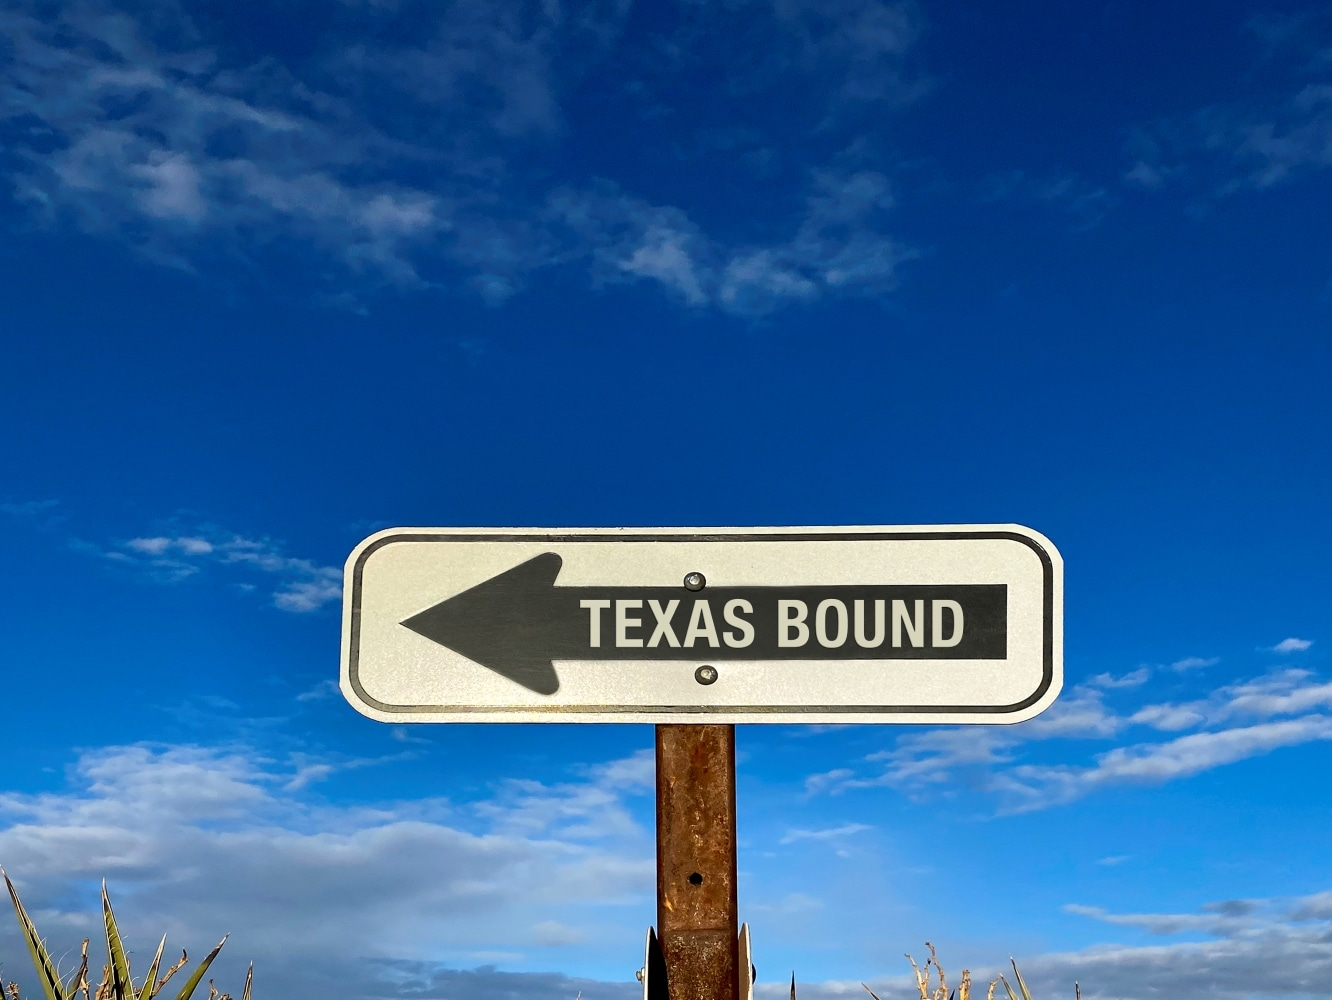 Texas bound road sign